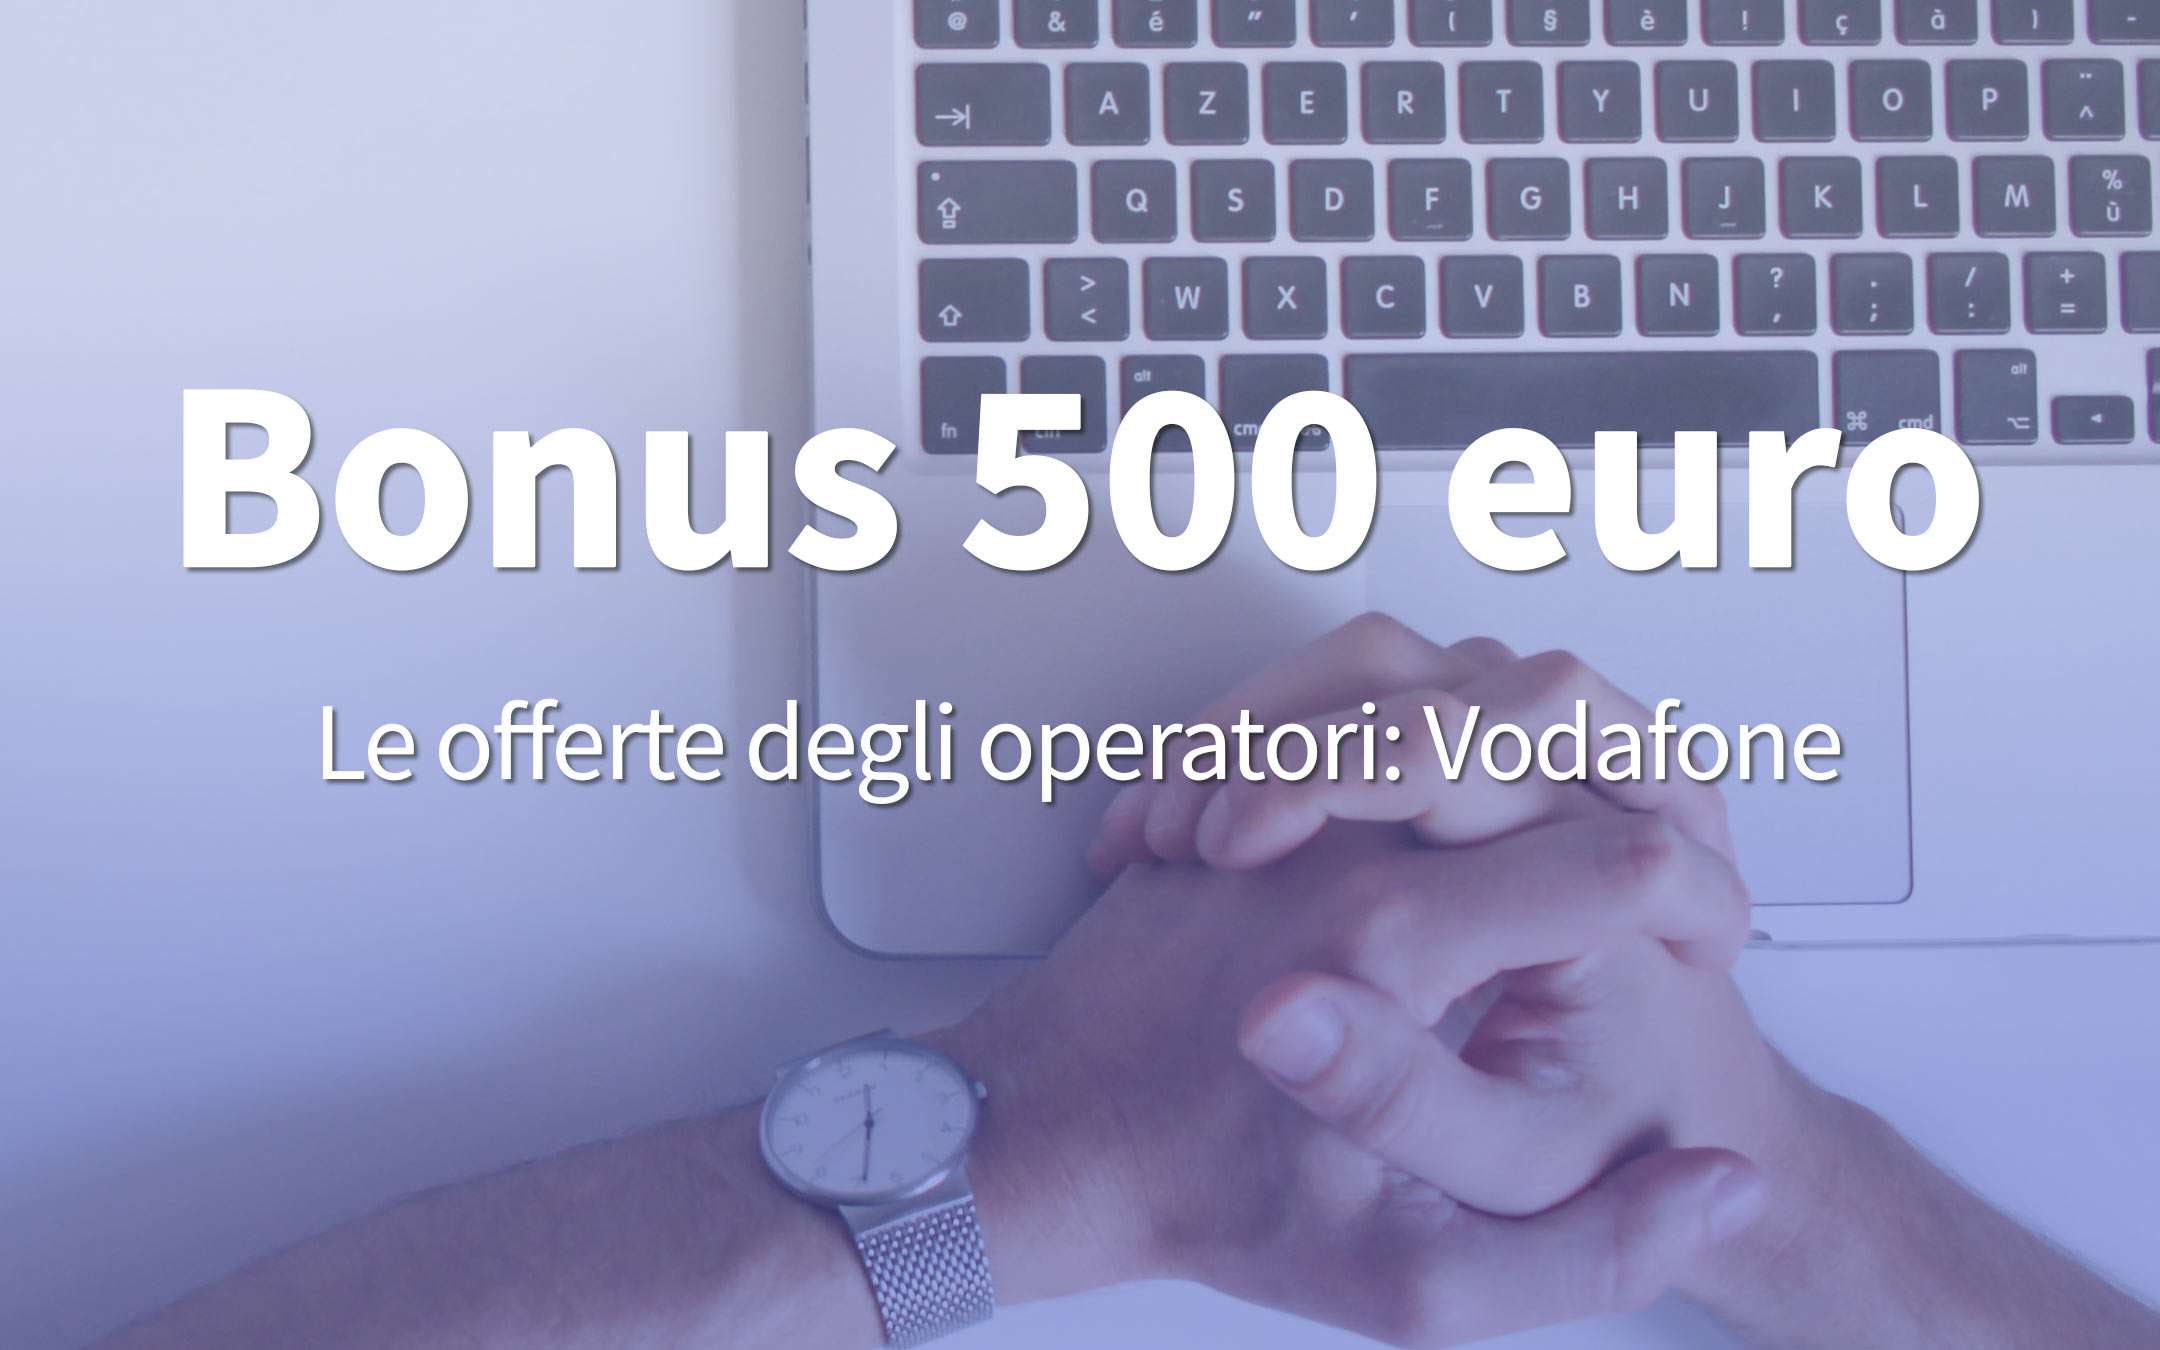 Bonus 500 euros: the offer proposed by Vodafone